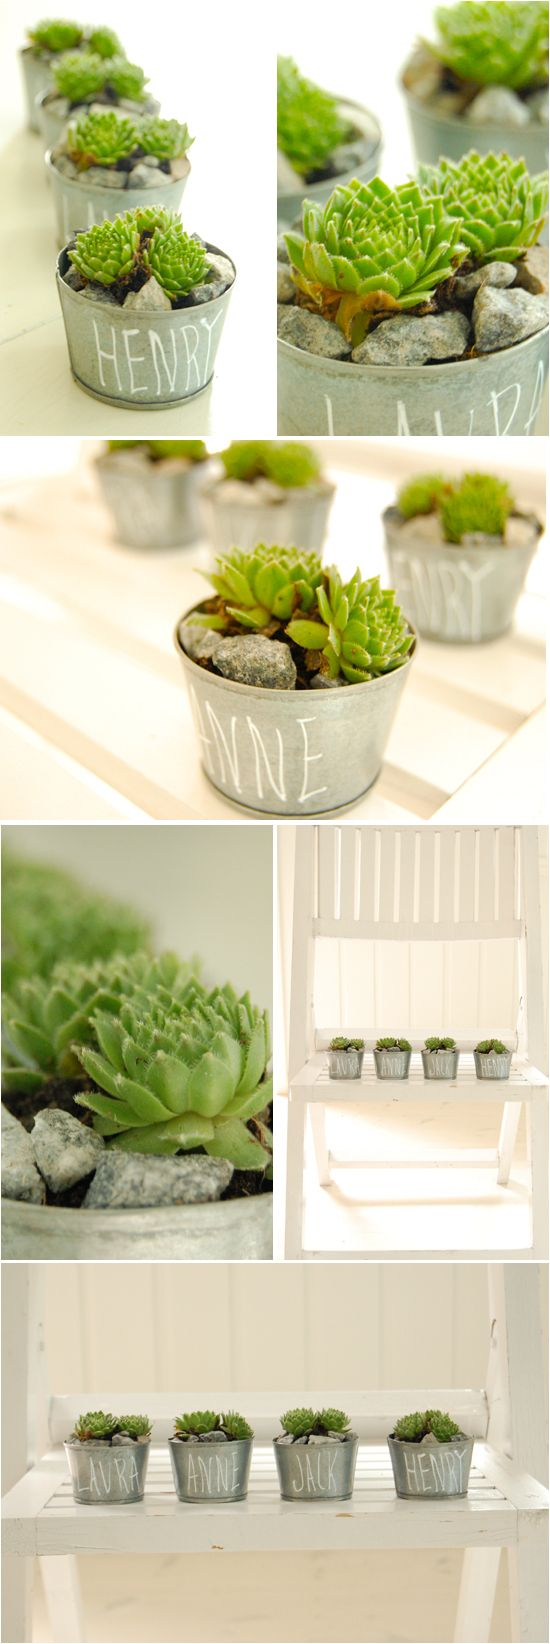 22 best succulent images on Pinterest | Hanging succulents, House ...